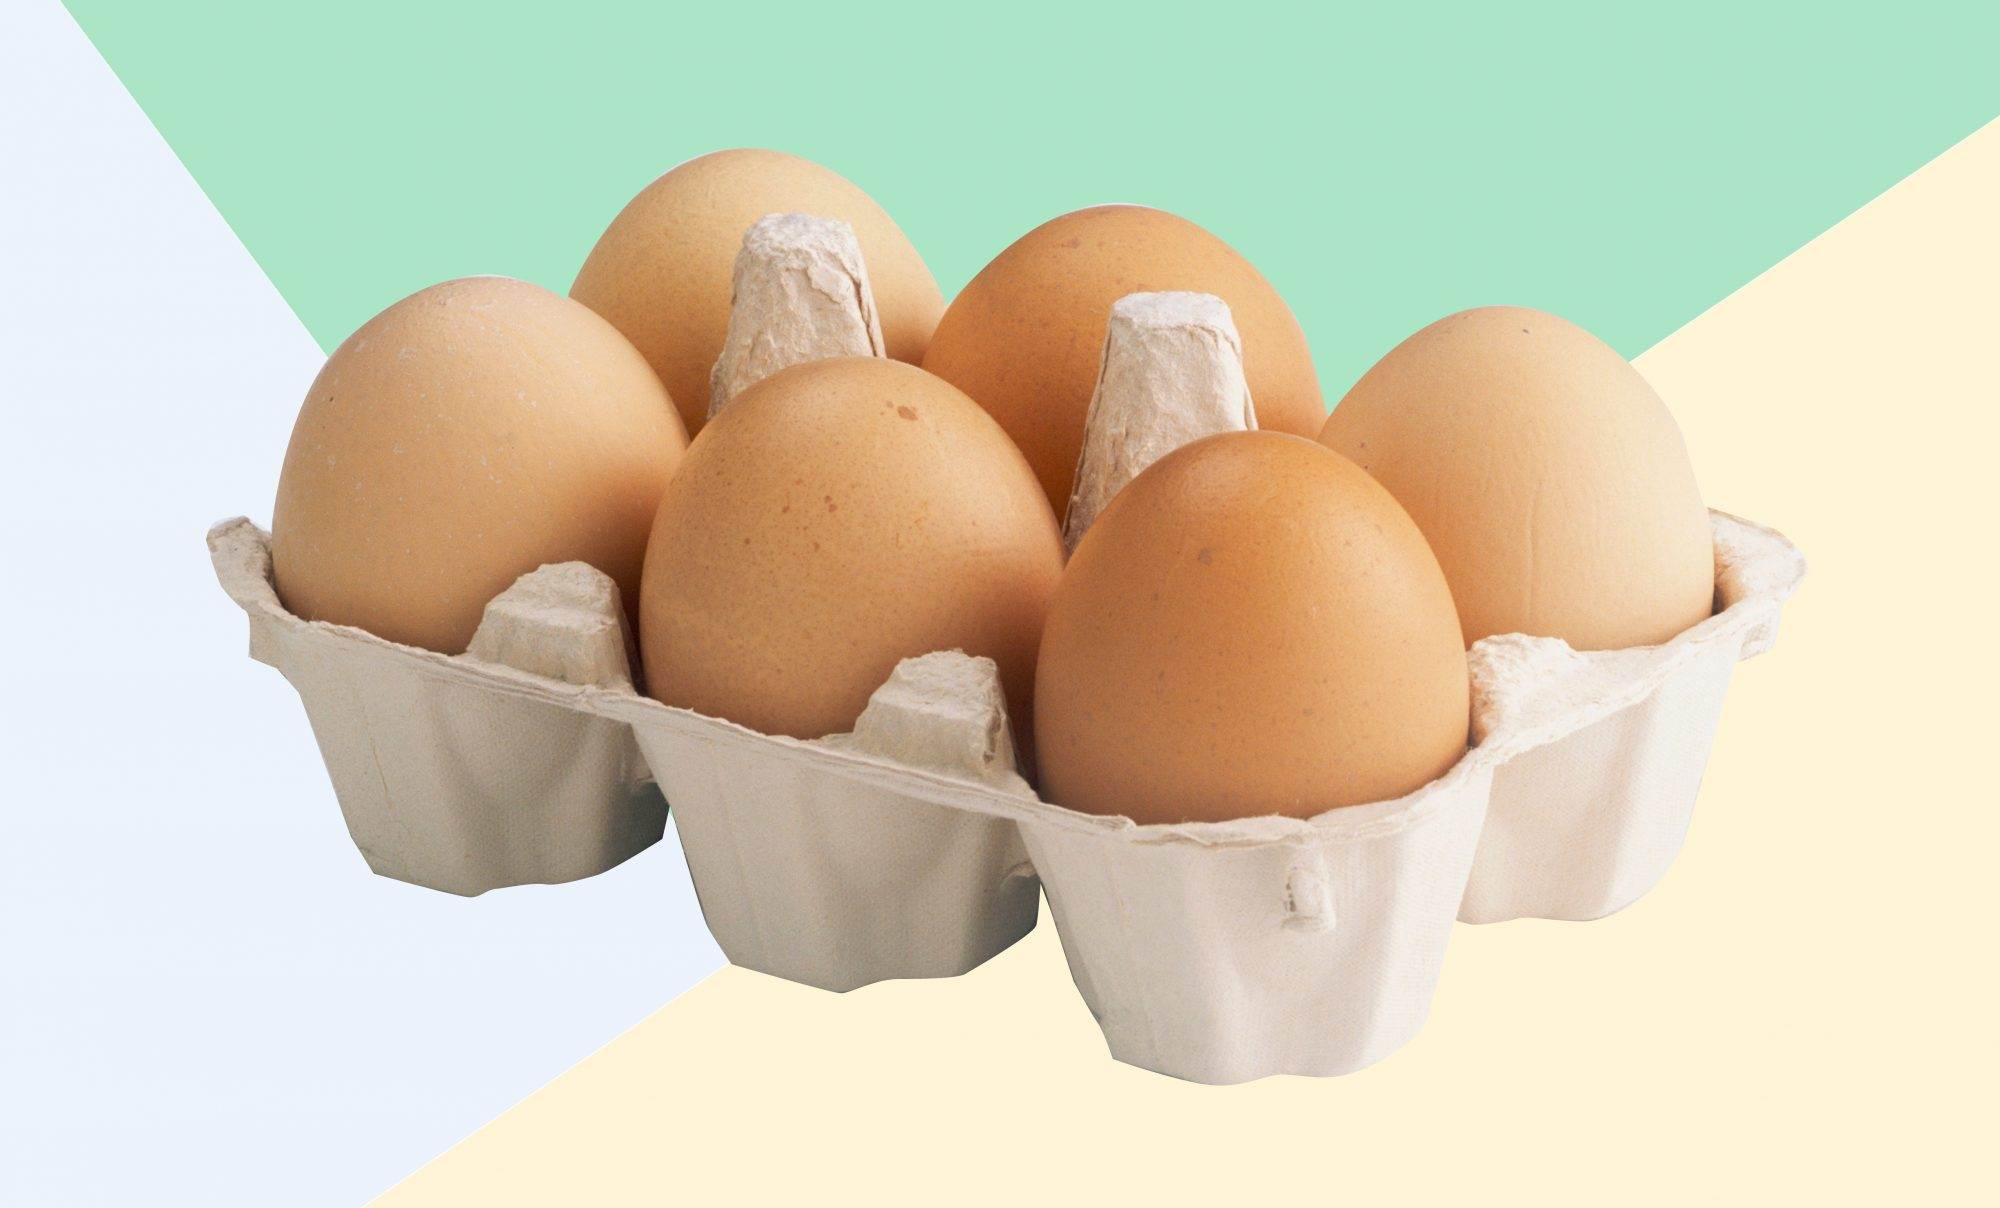 The Surprising but Strange Secret to Keeping Eggs as Fresh as Possible